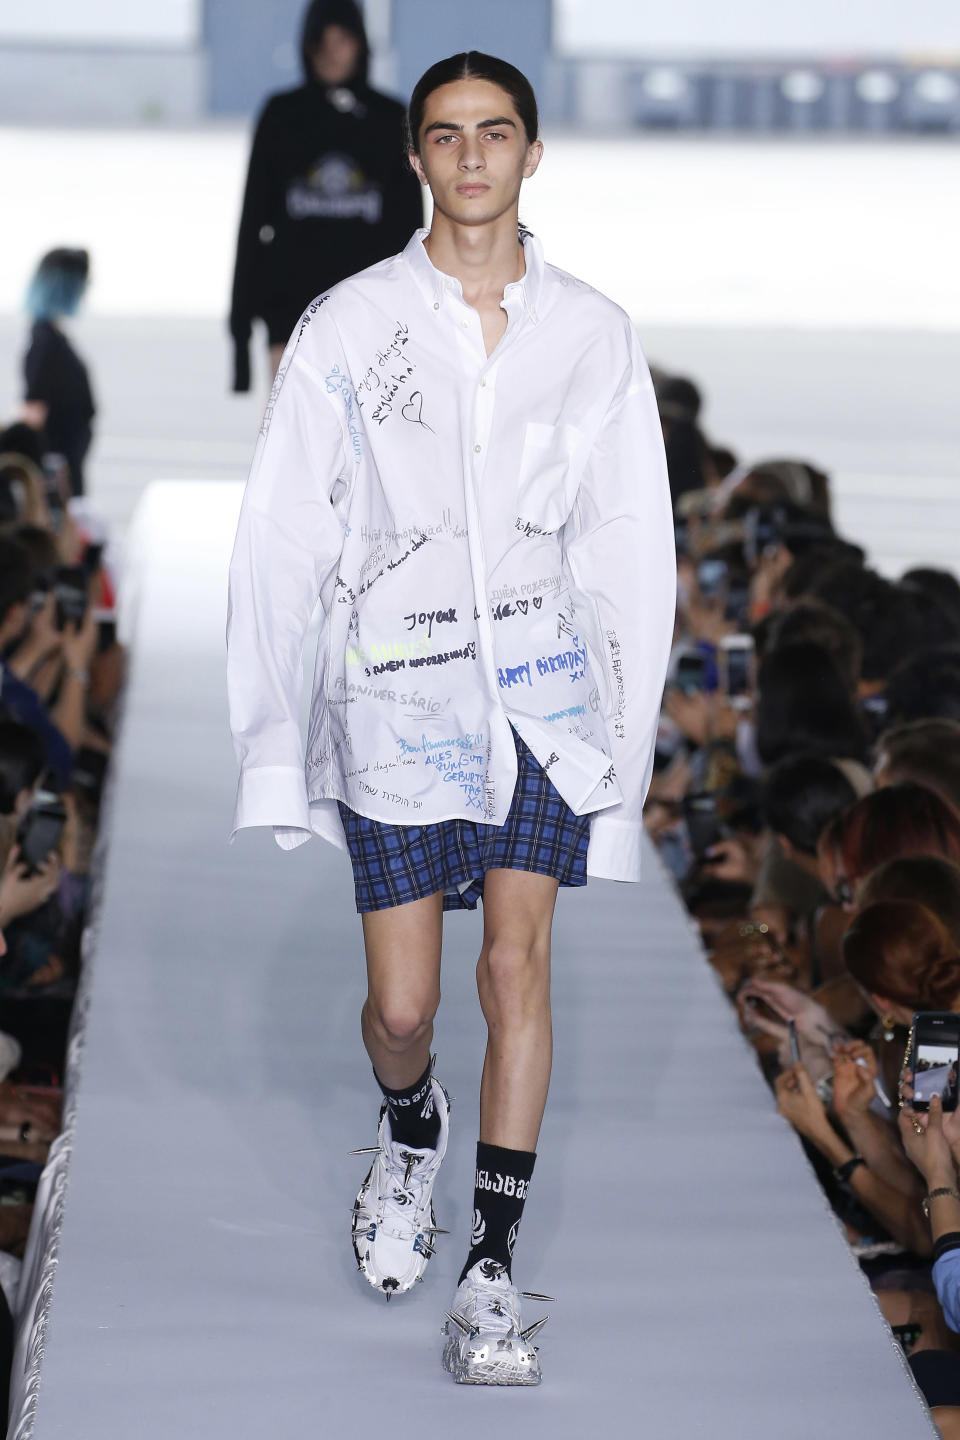 The haute couture school shirt debuted on the SS19 runway during Paris Fashion Week [Photo: Getty]